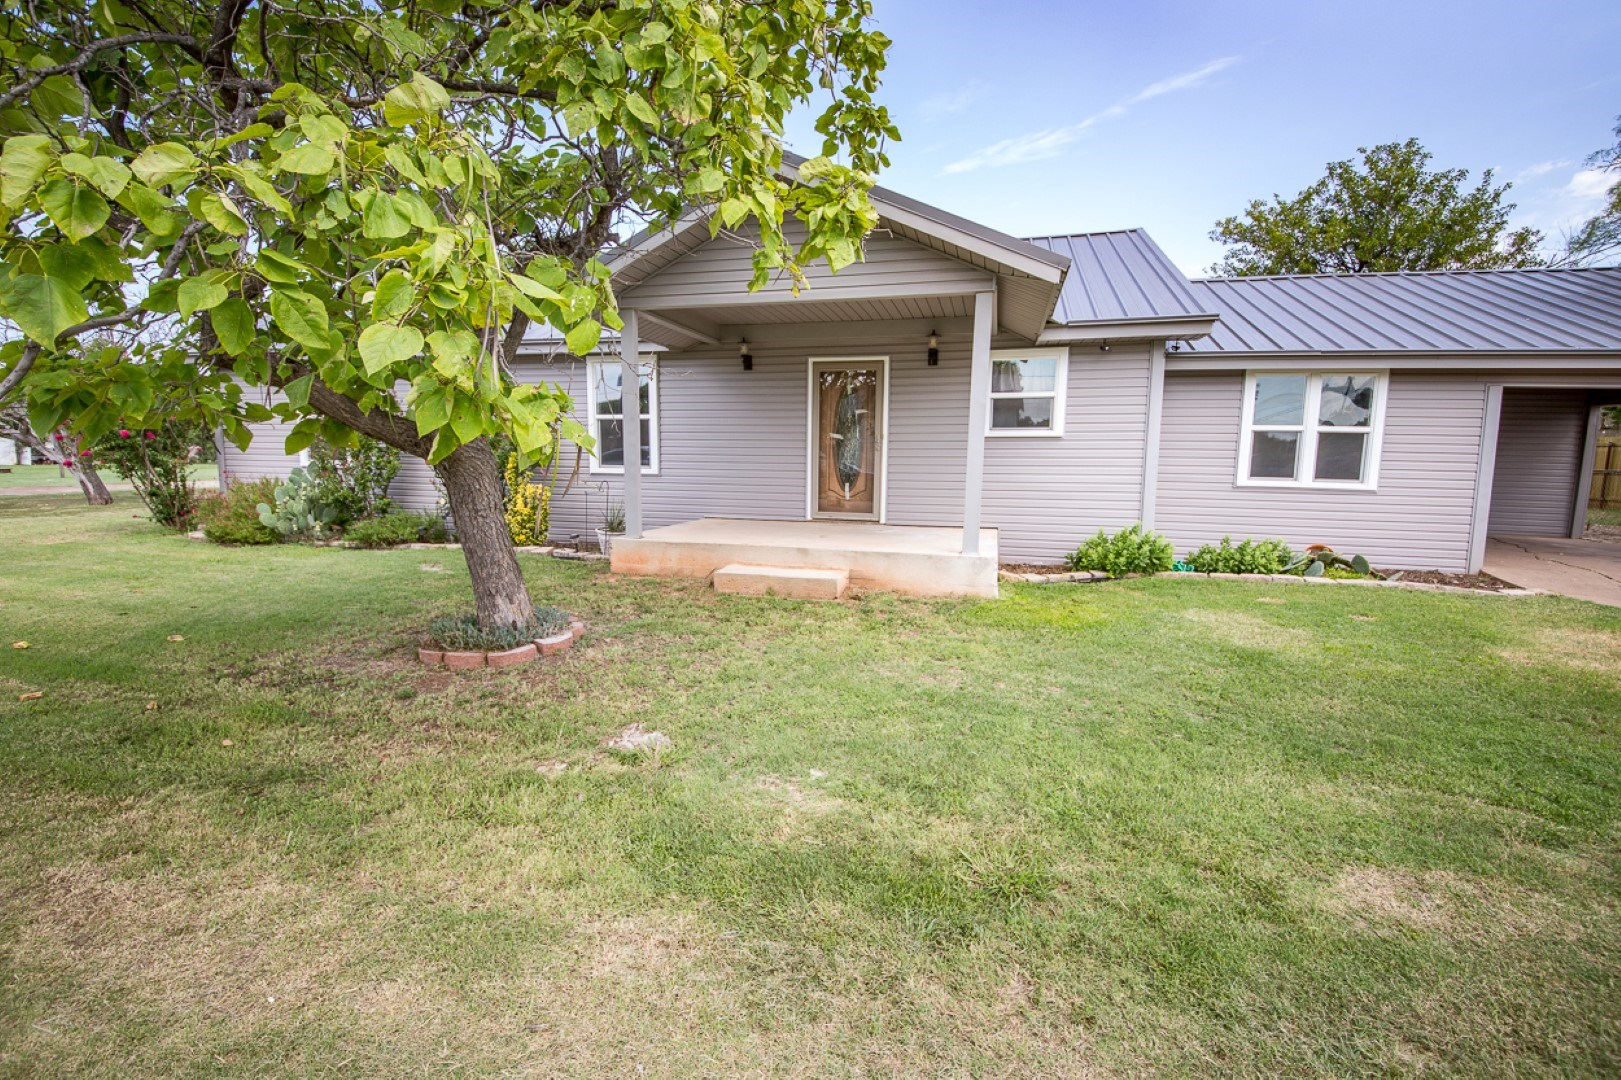 Homes for Sale Holliday Texas Archer County